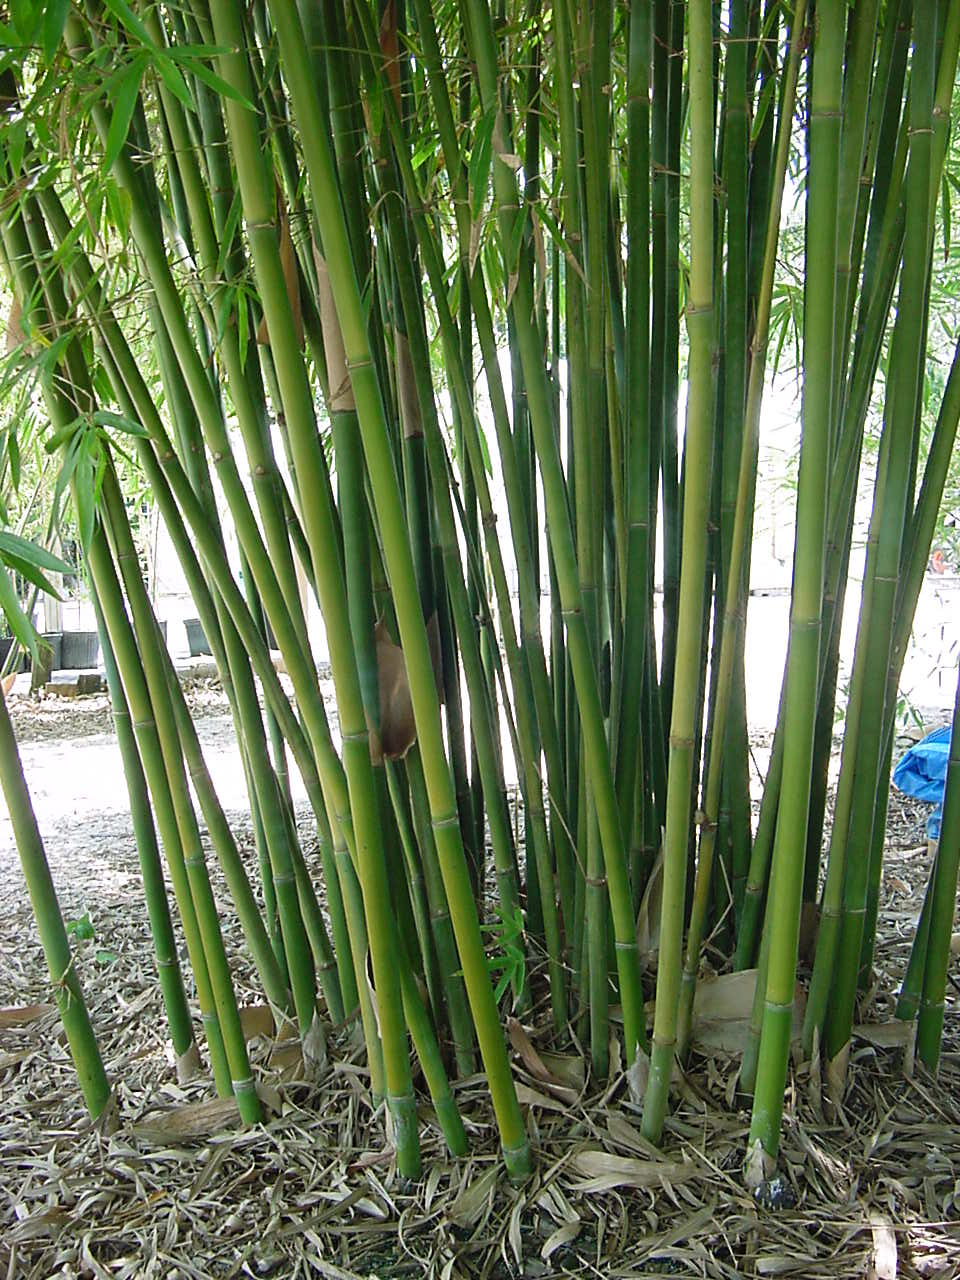 About bamboo — bambootexas